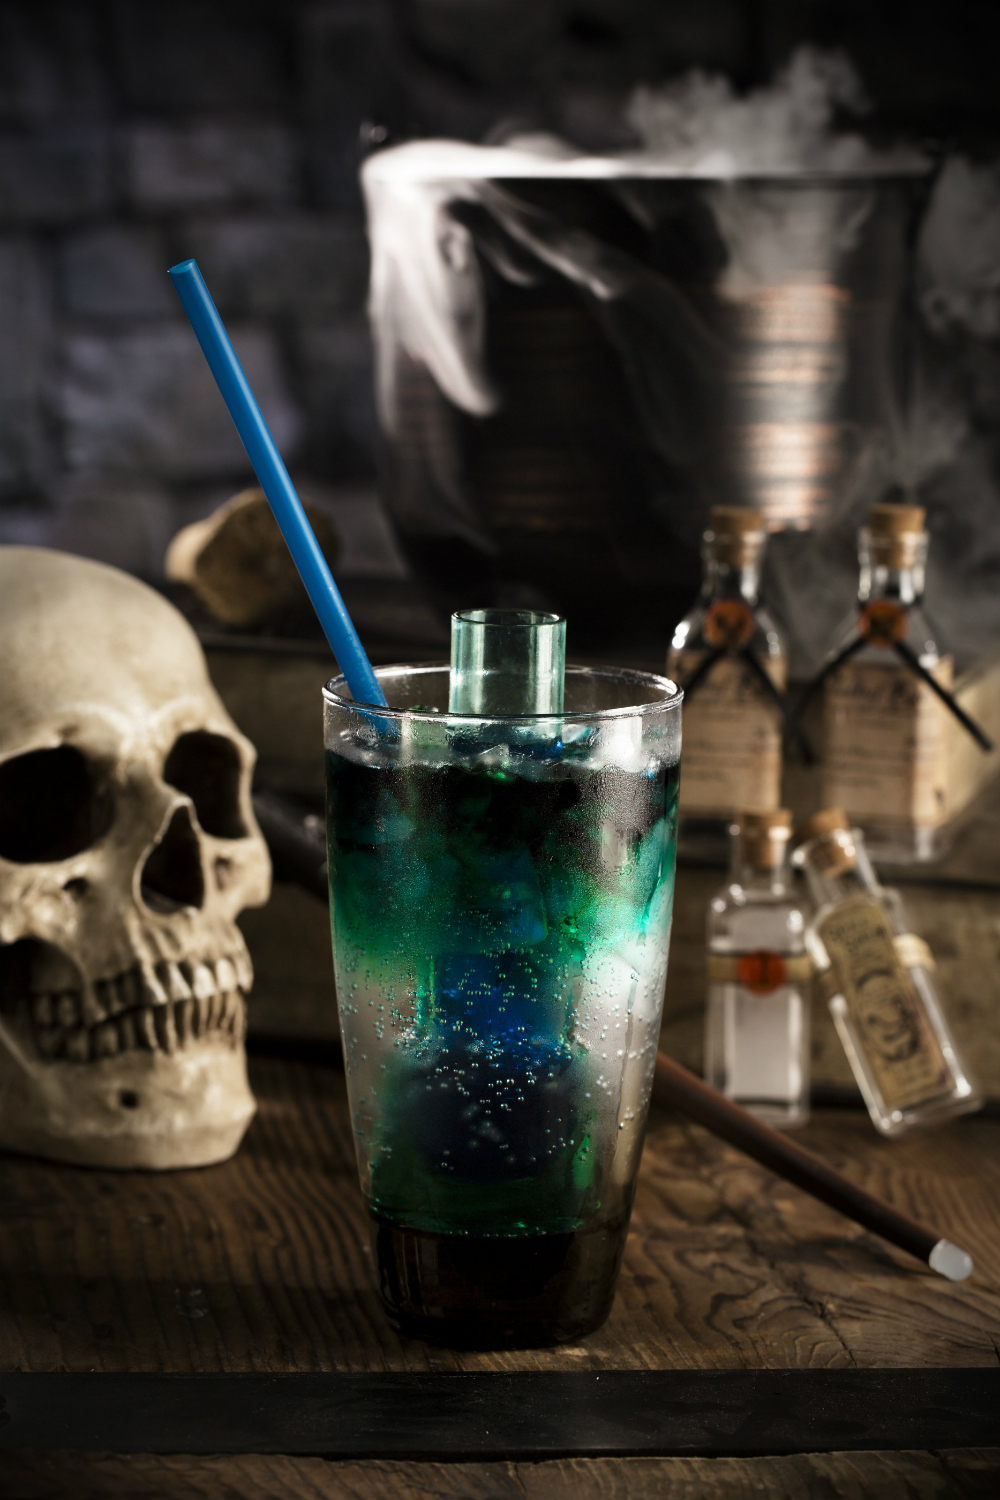 Harry Potter Cocktails: The Avada Kedavra Adios